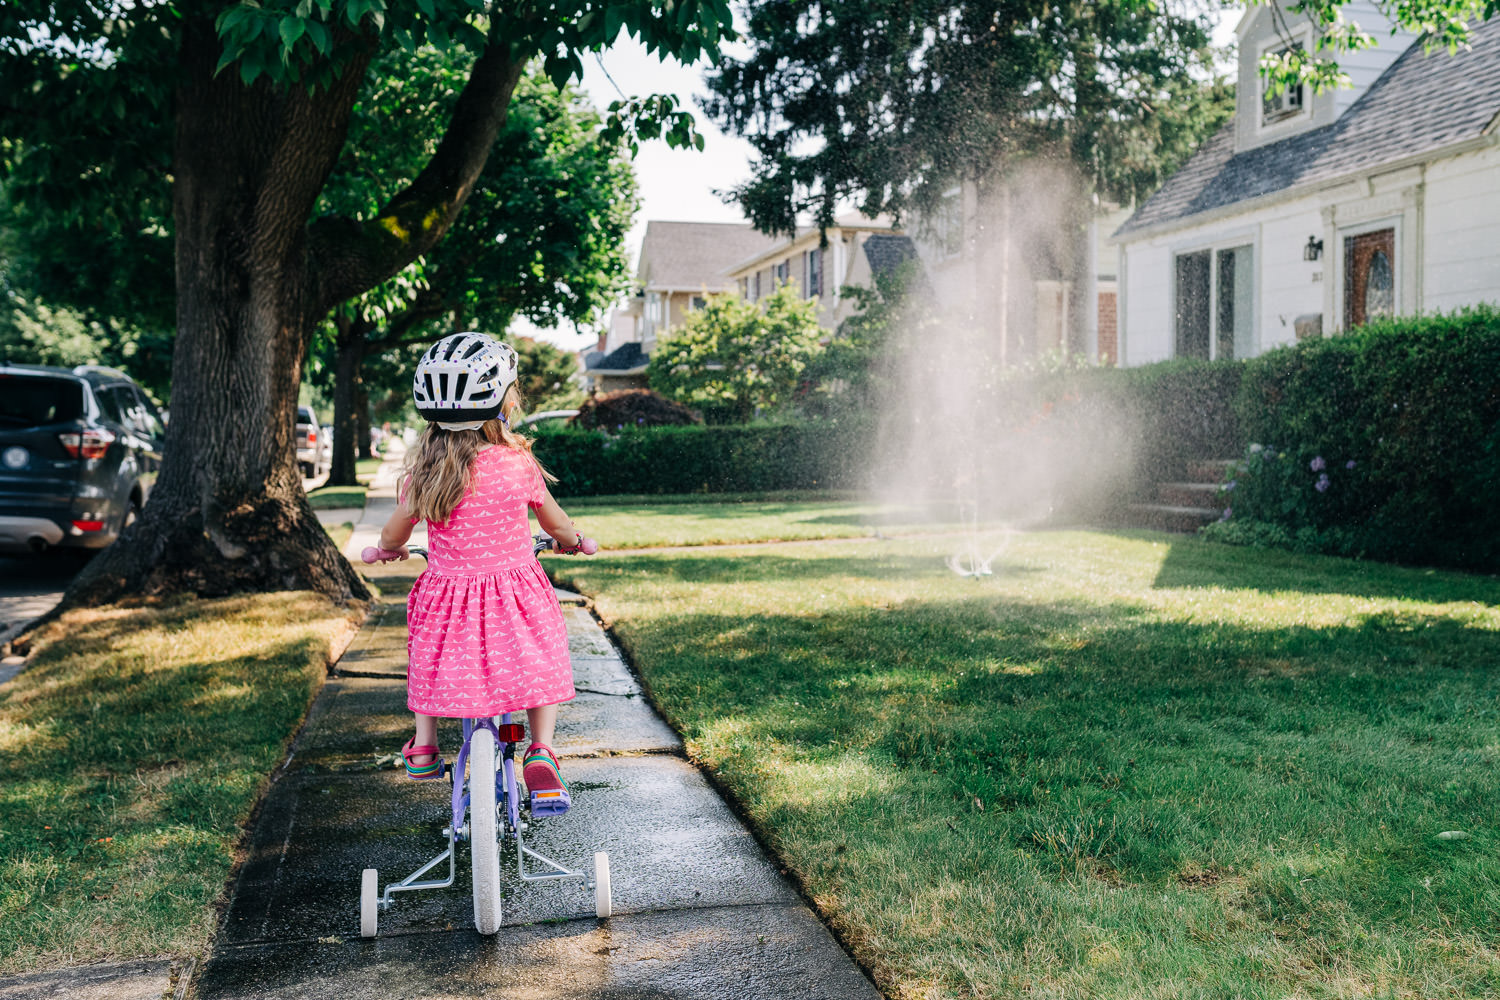 A little girl rides her bike by a sprinkler.